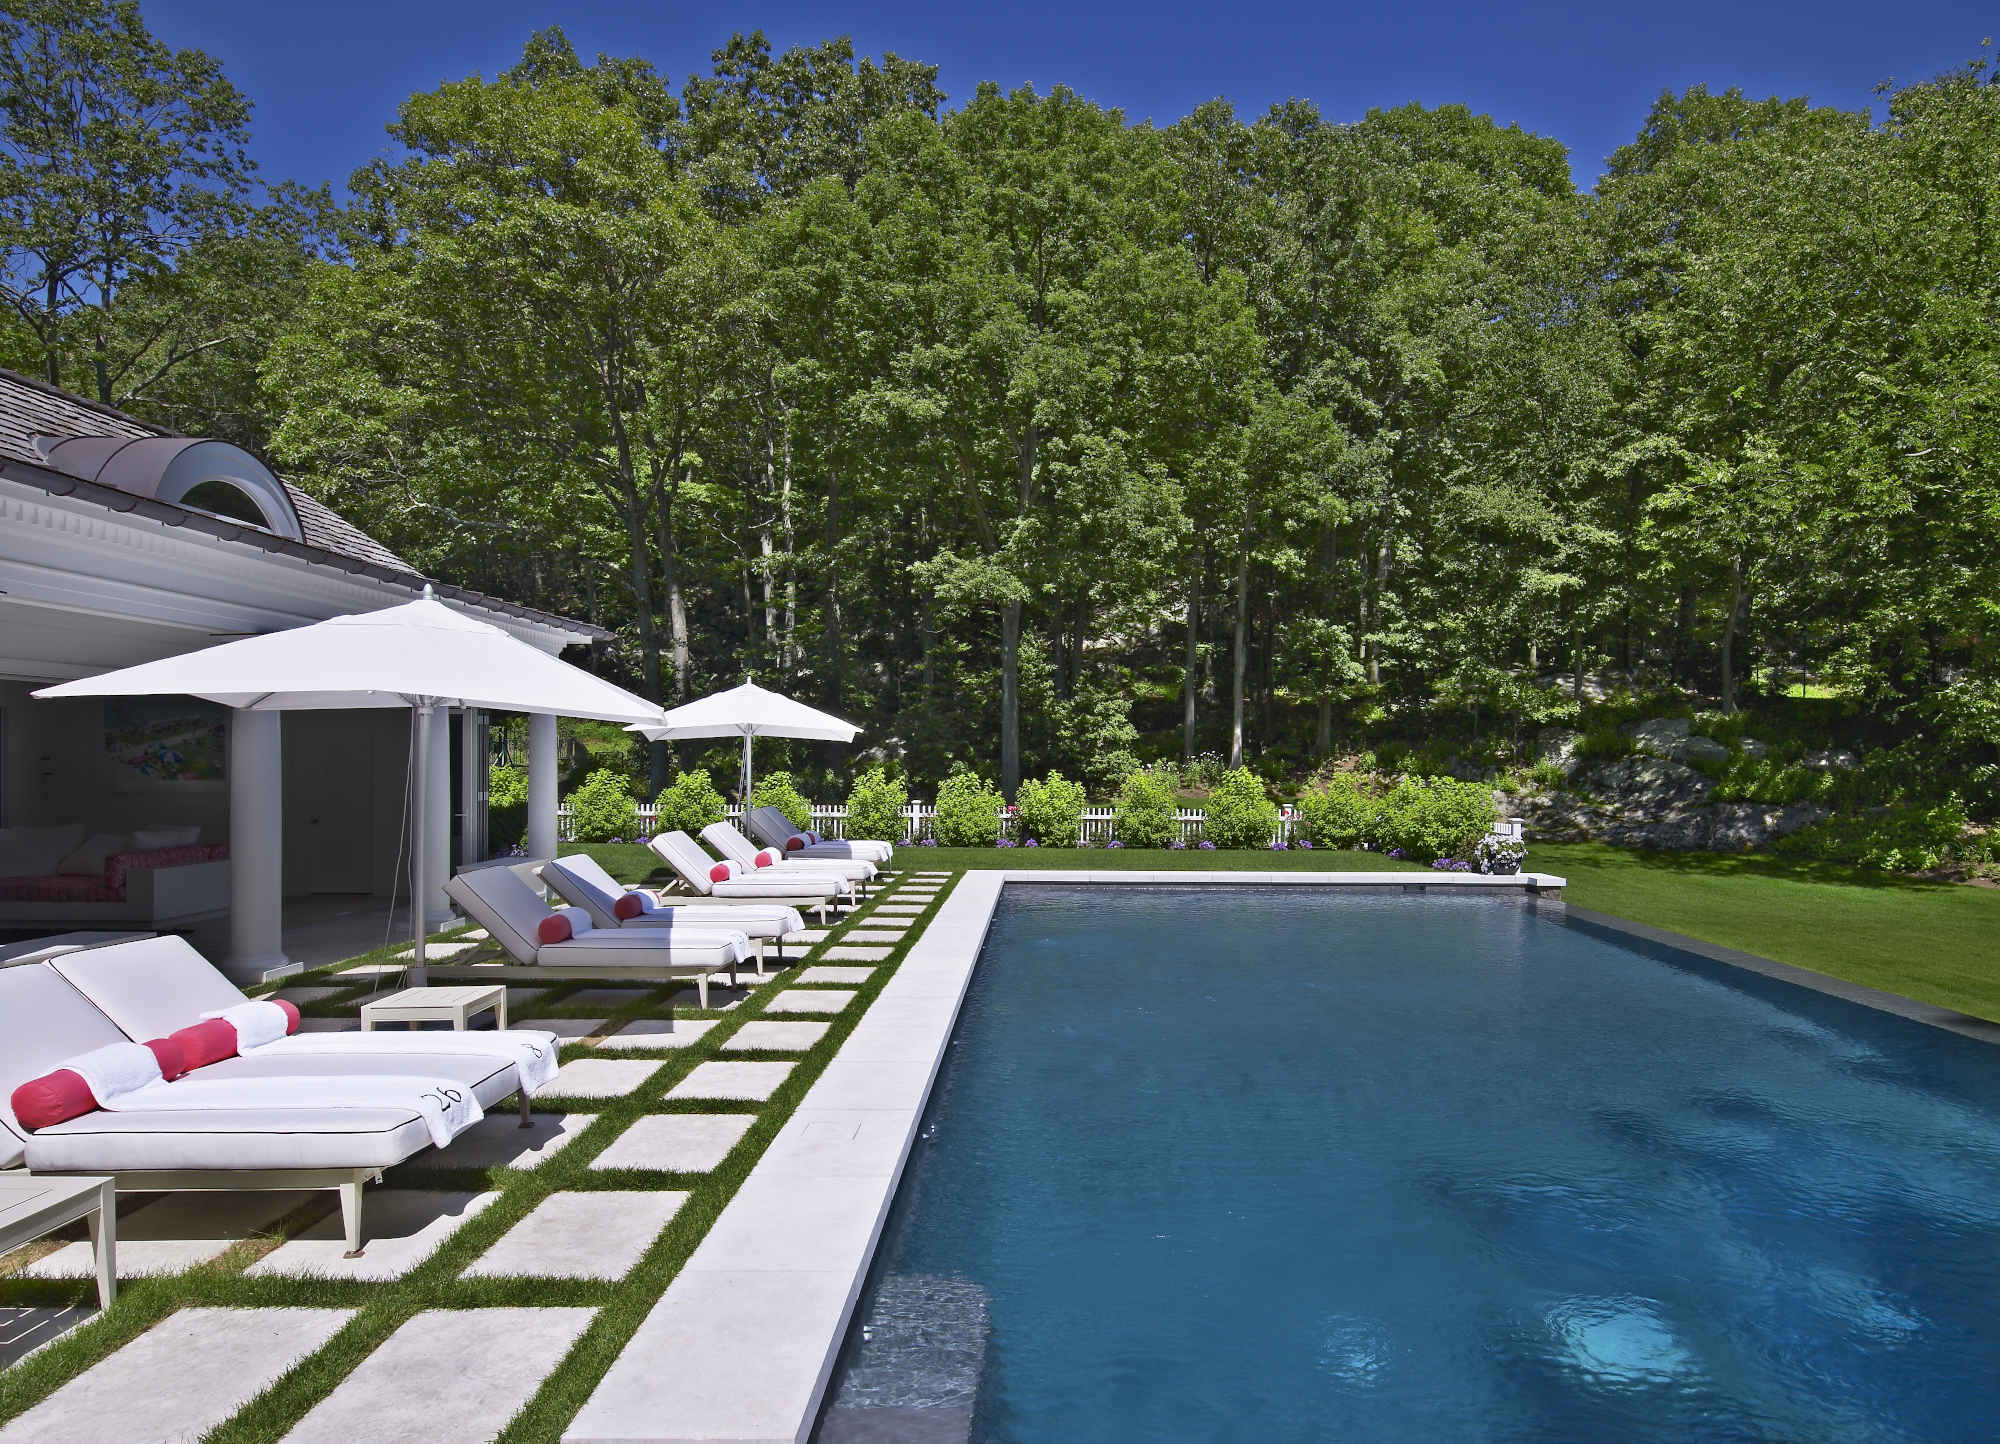 Poolhouse_photo_1.jpg